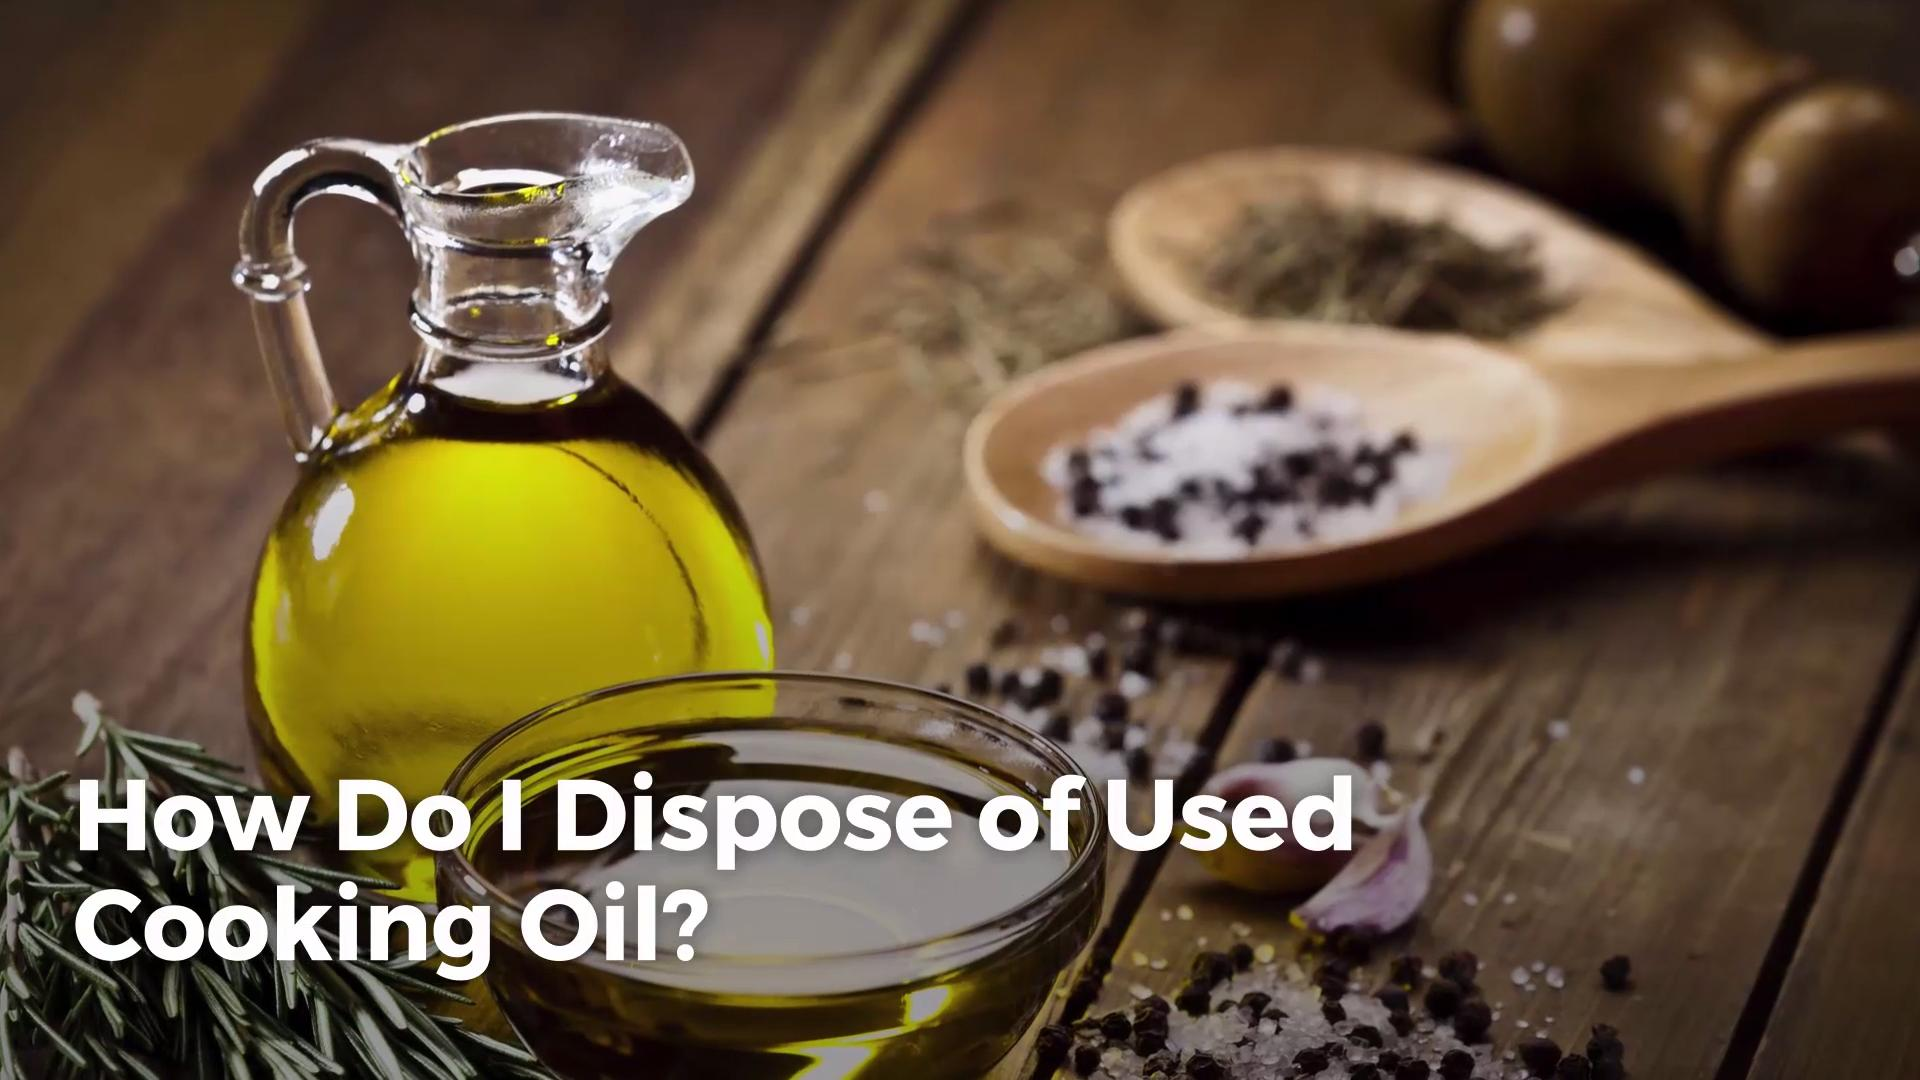 puryfying used cooking oil Use cooking oil to add flavor to your foods, create non-stick surfaces, and add golden brown crusts to your culinary creations perfect for use in diners, fast-food businesses, and food trucks, restaurant frying oil is a must-have product.